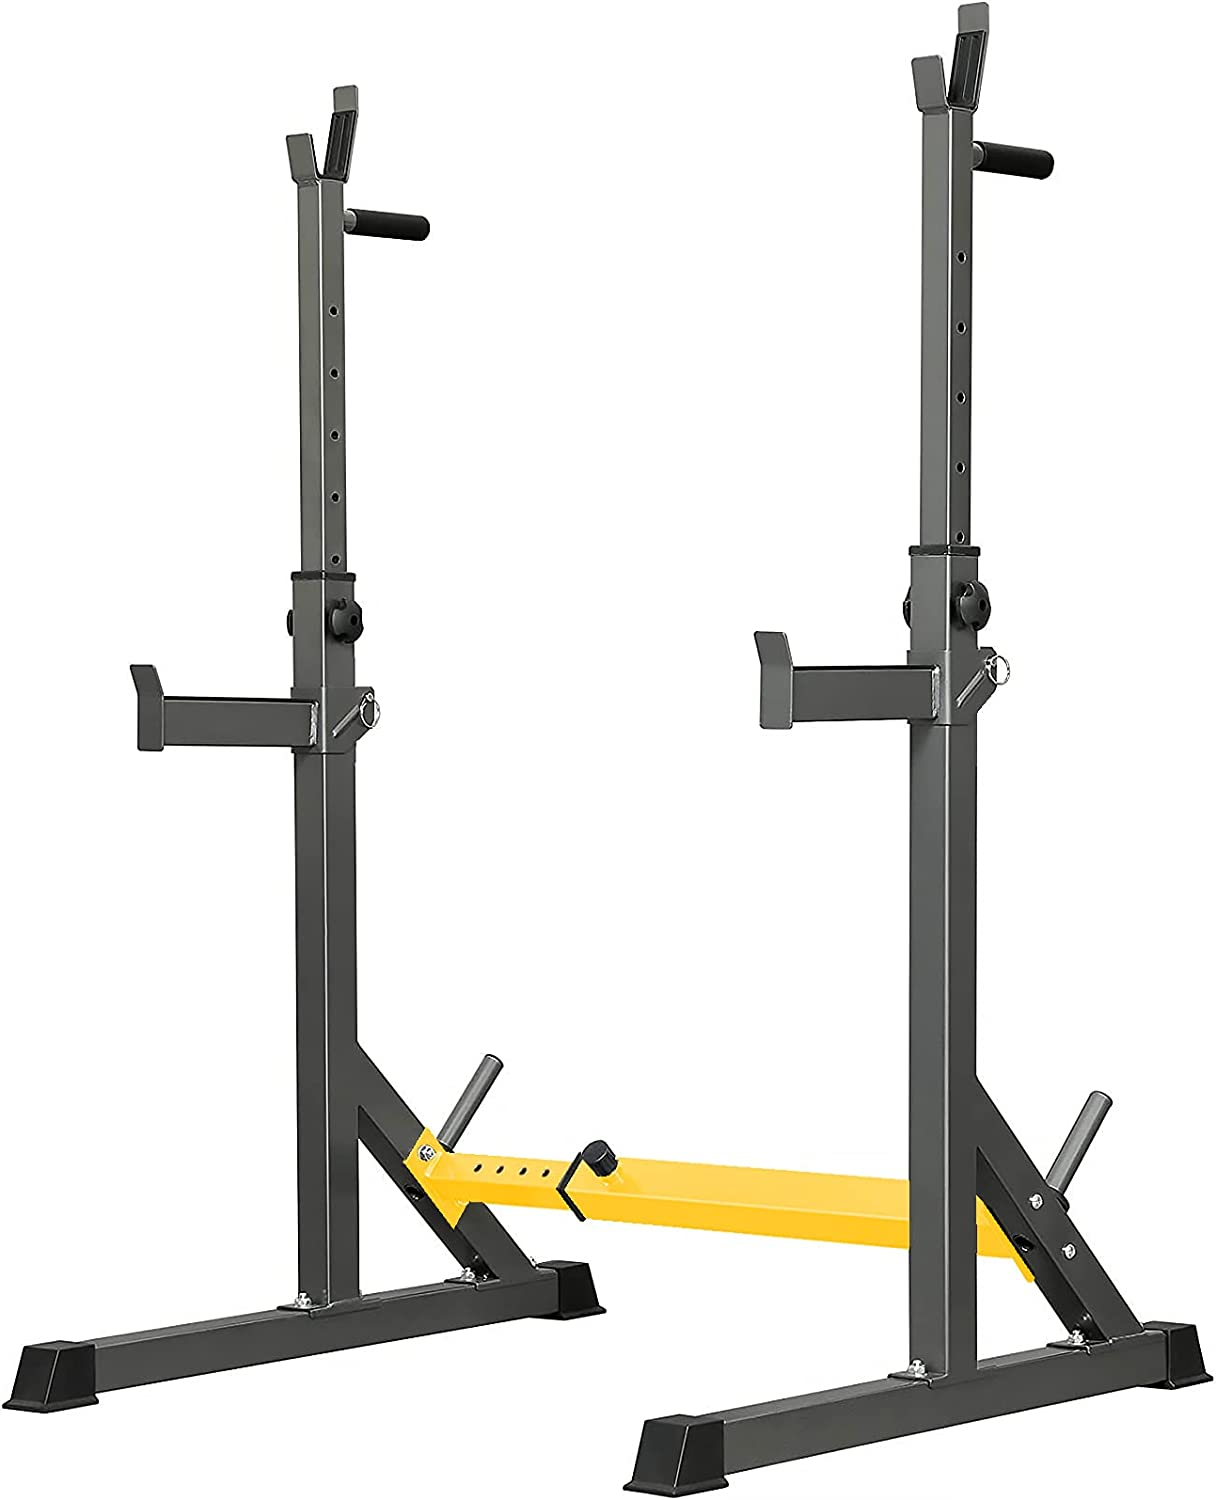 Qudodo Squat Rack Bench Press Multi-Function Barbell Rack, Maximum Load 500 lbs,Squat Rack Adjustable Height and Width, Super Long Bumper, Used for Commercial, Home Gym Portable Squat Rack